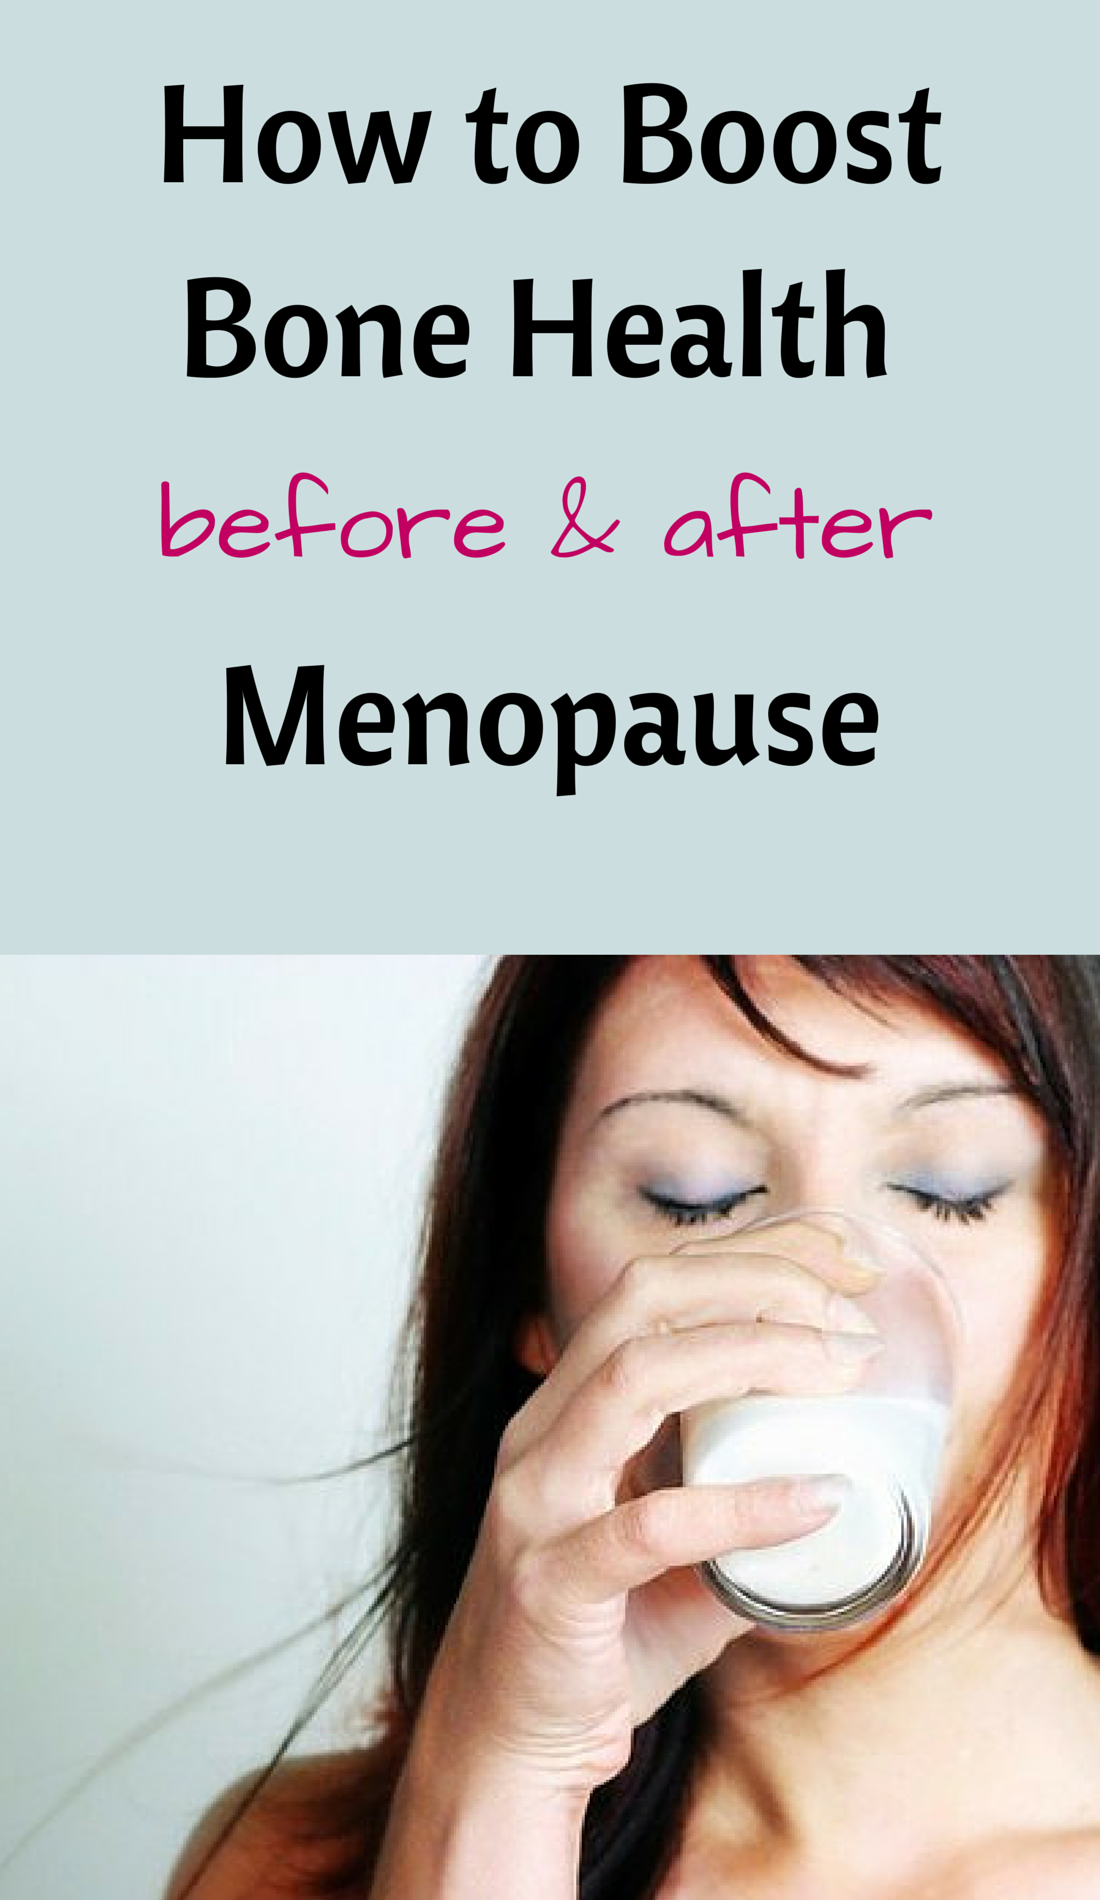 How to Boost Bone Health Before and After Menopause images